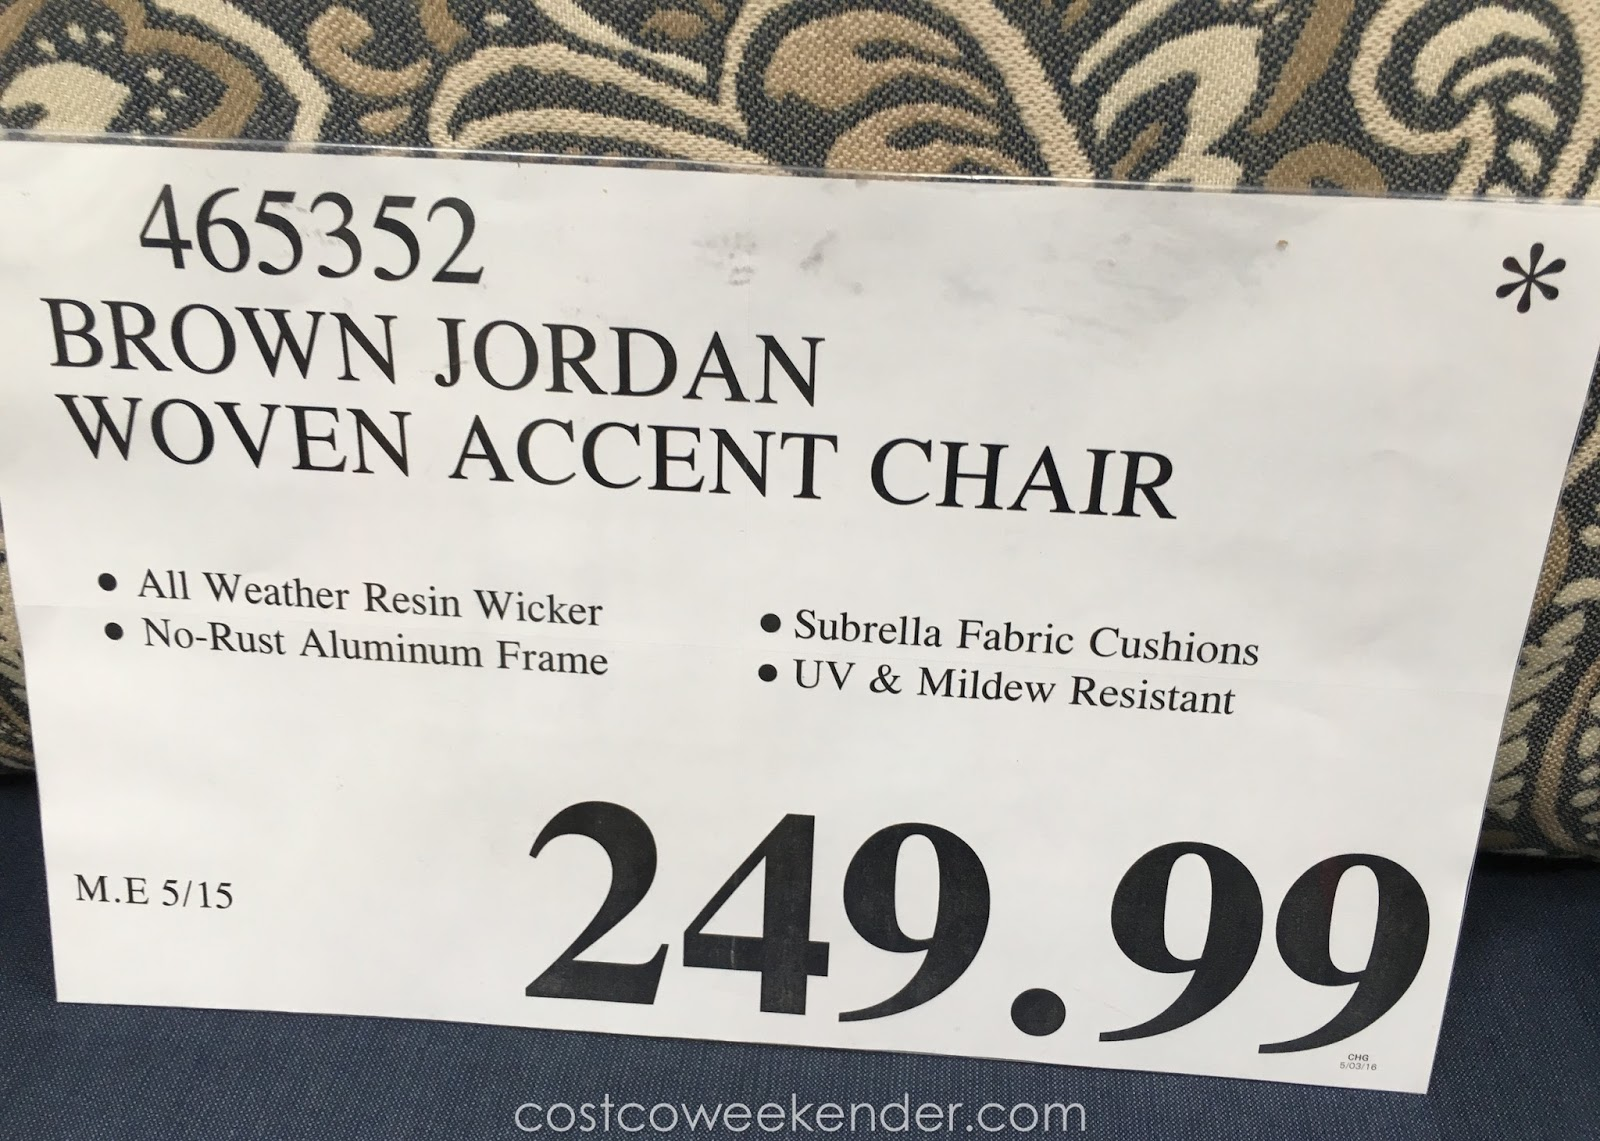 Fine Studio By Brown Jordan Woven Accent Chair Costco Weekender Pabps2019 Chair Design Images Pabps2019Com